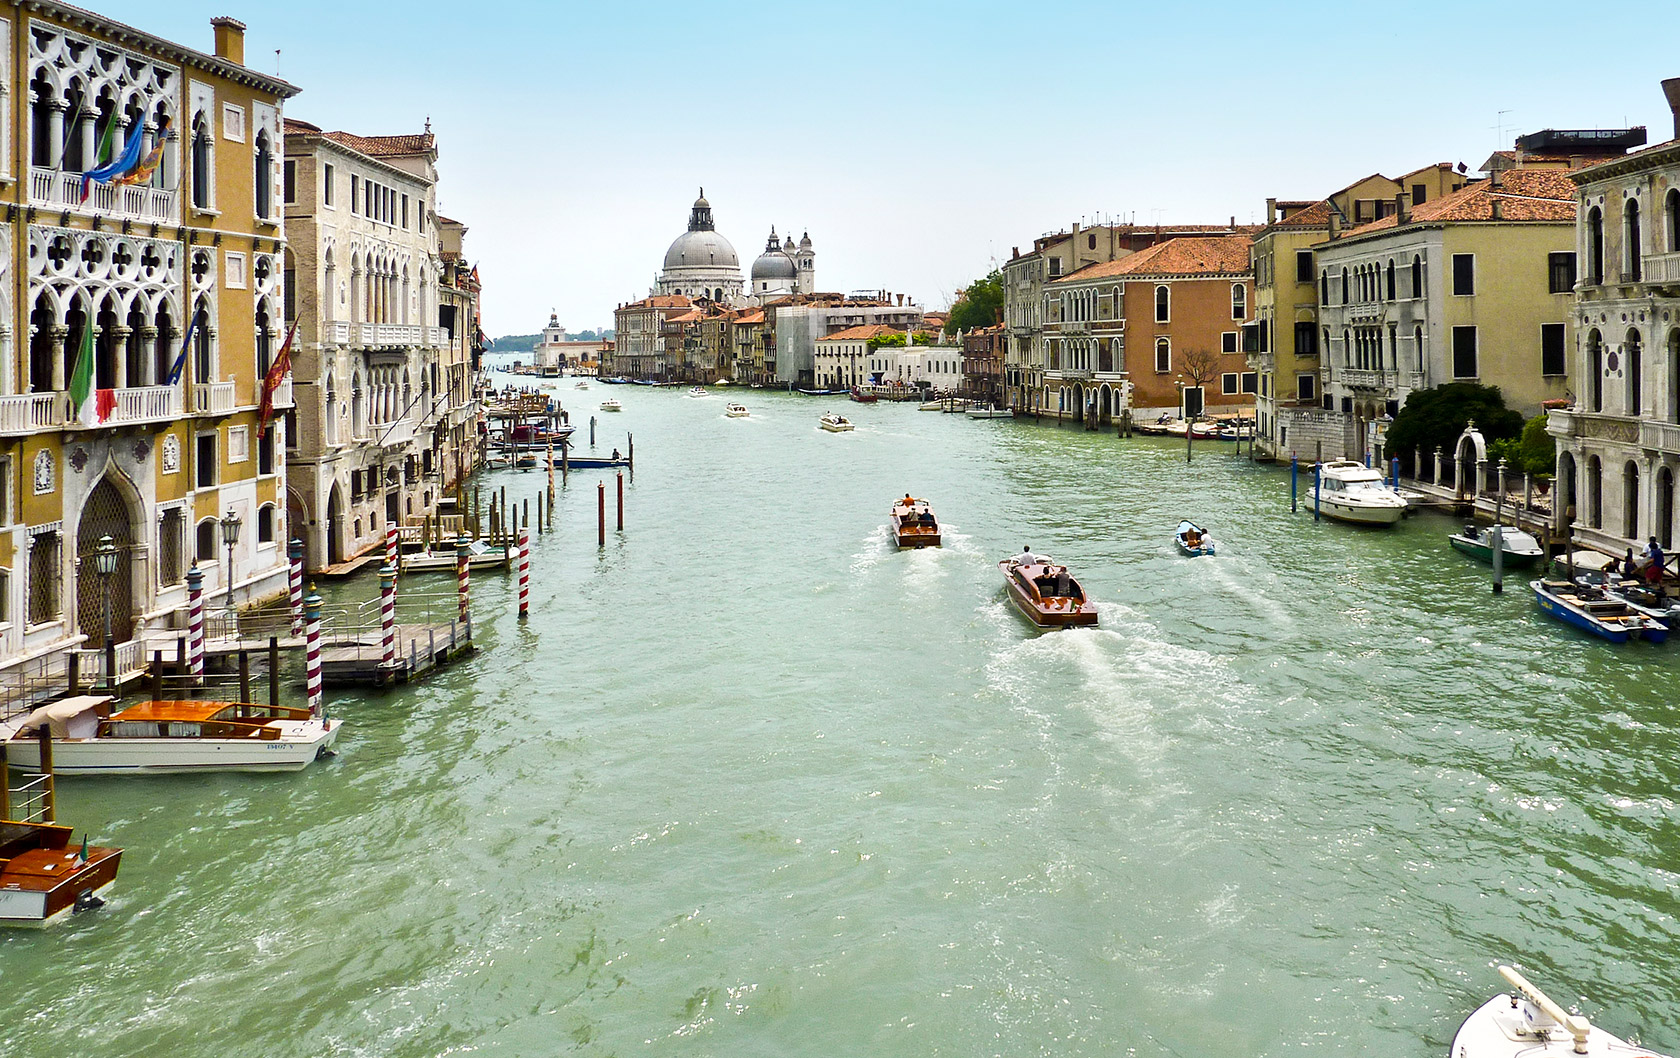 Travel Tips for a Do-Able Day Trip to Venice from Florence. And sample itinerary!